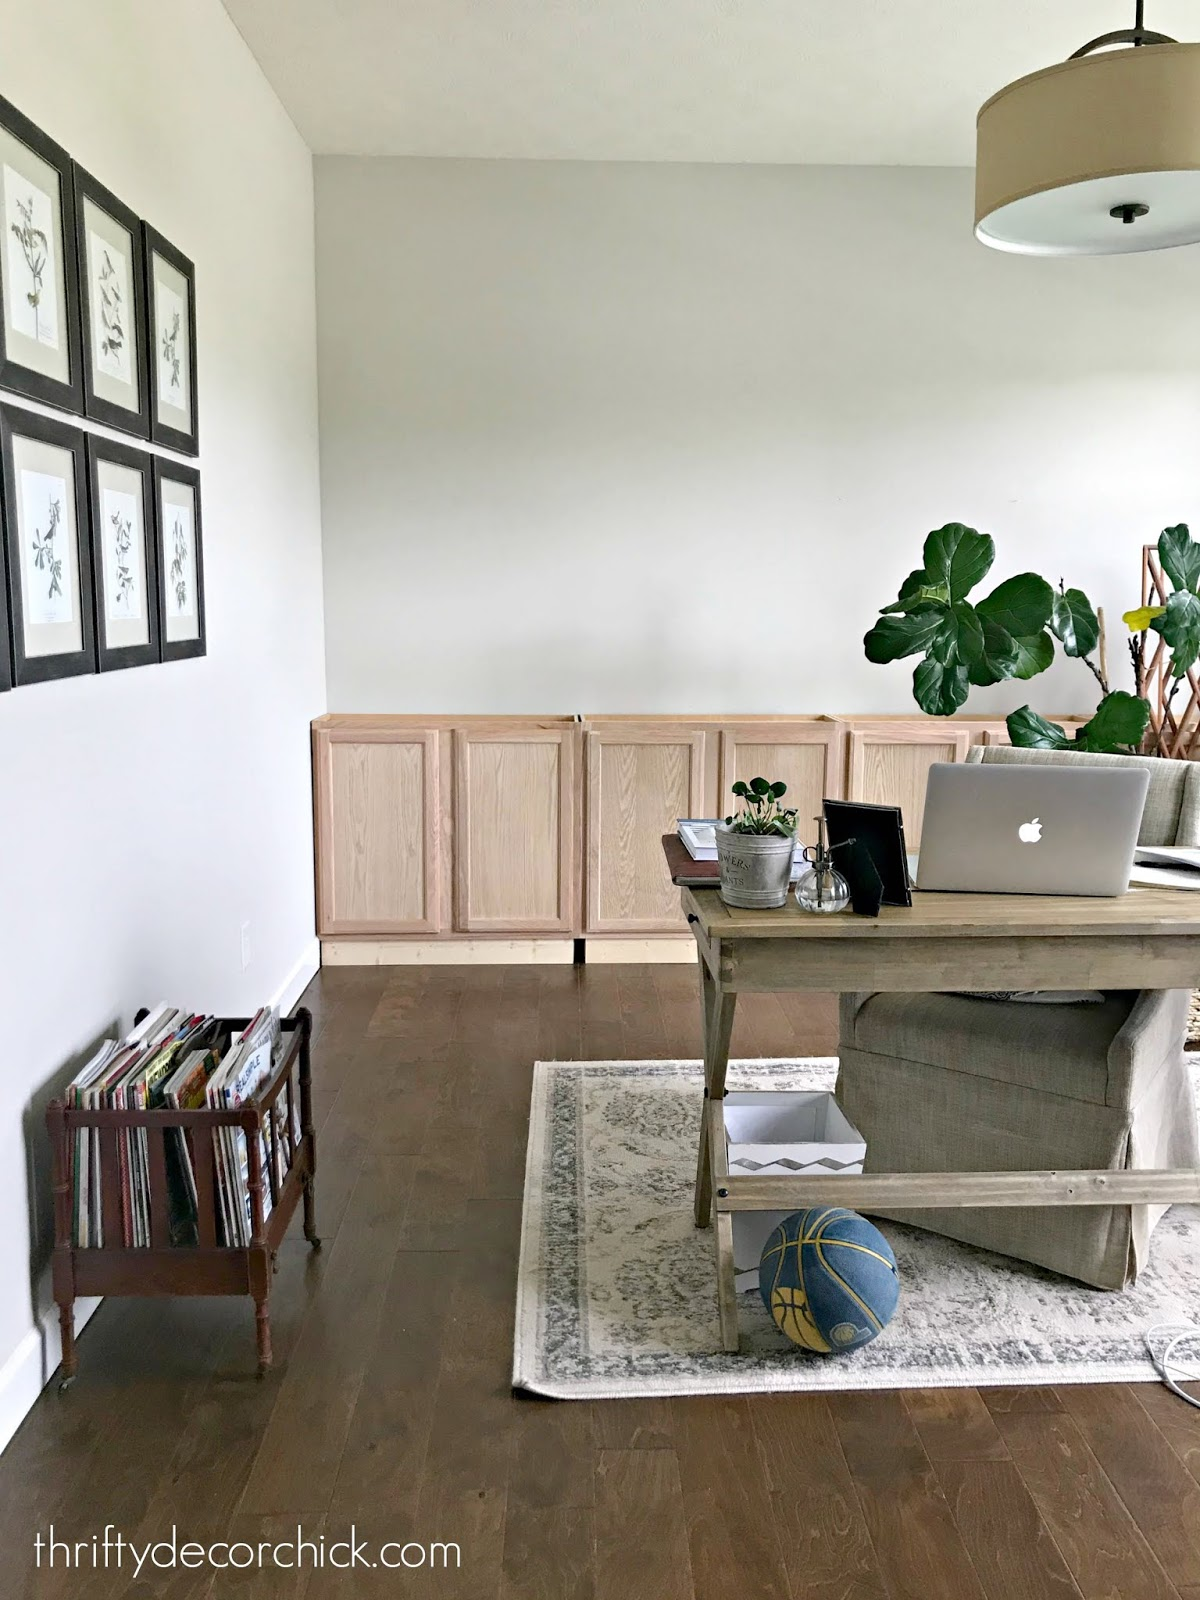 The Office Diy Built Ins Have Started From Thrifty Decor Chick